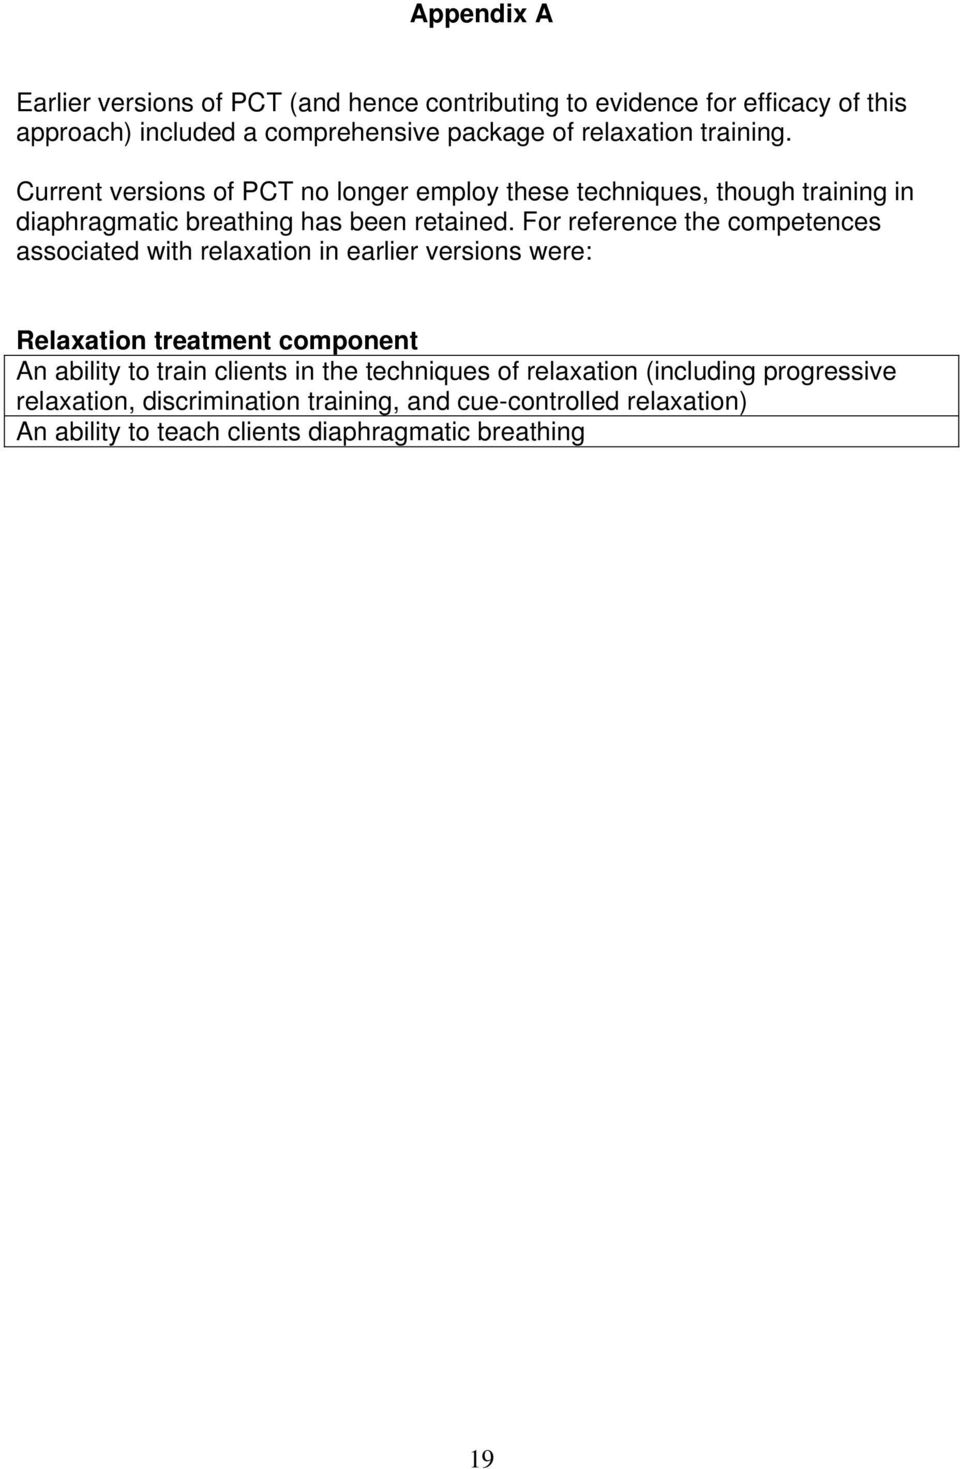 For reference the competences associated with relaxation in earlier versions were: Relaxation treatment component An ability to train clients in the